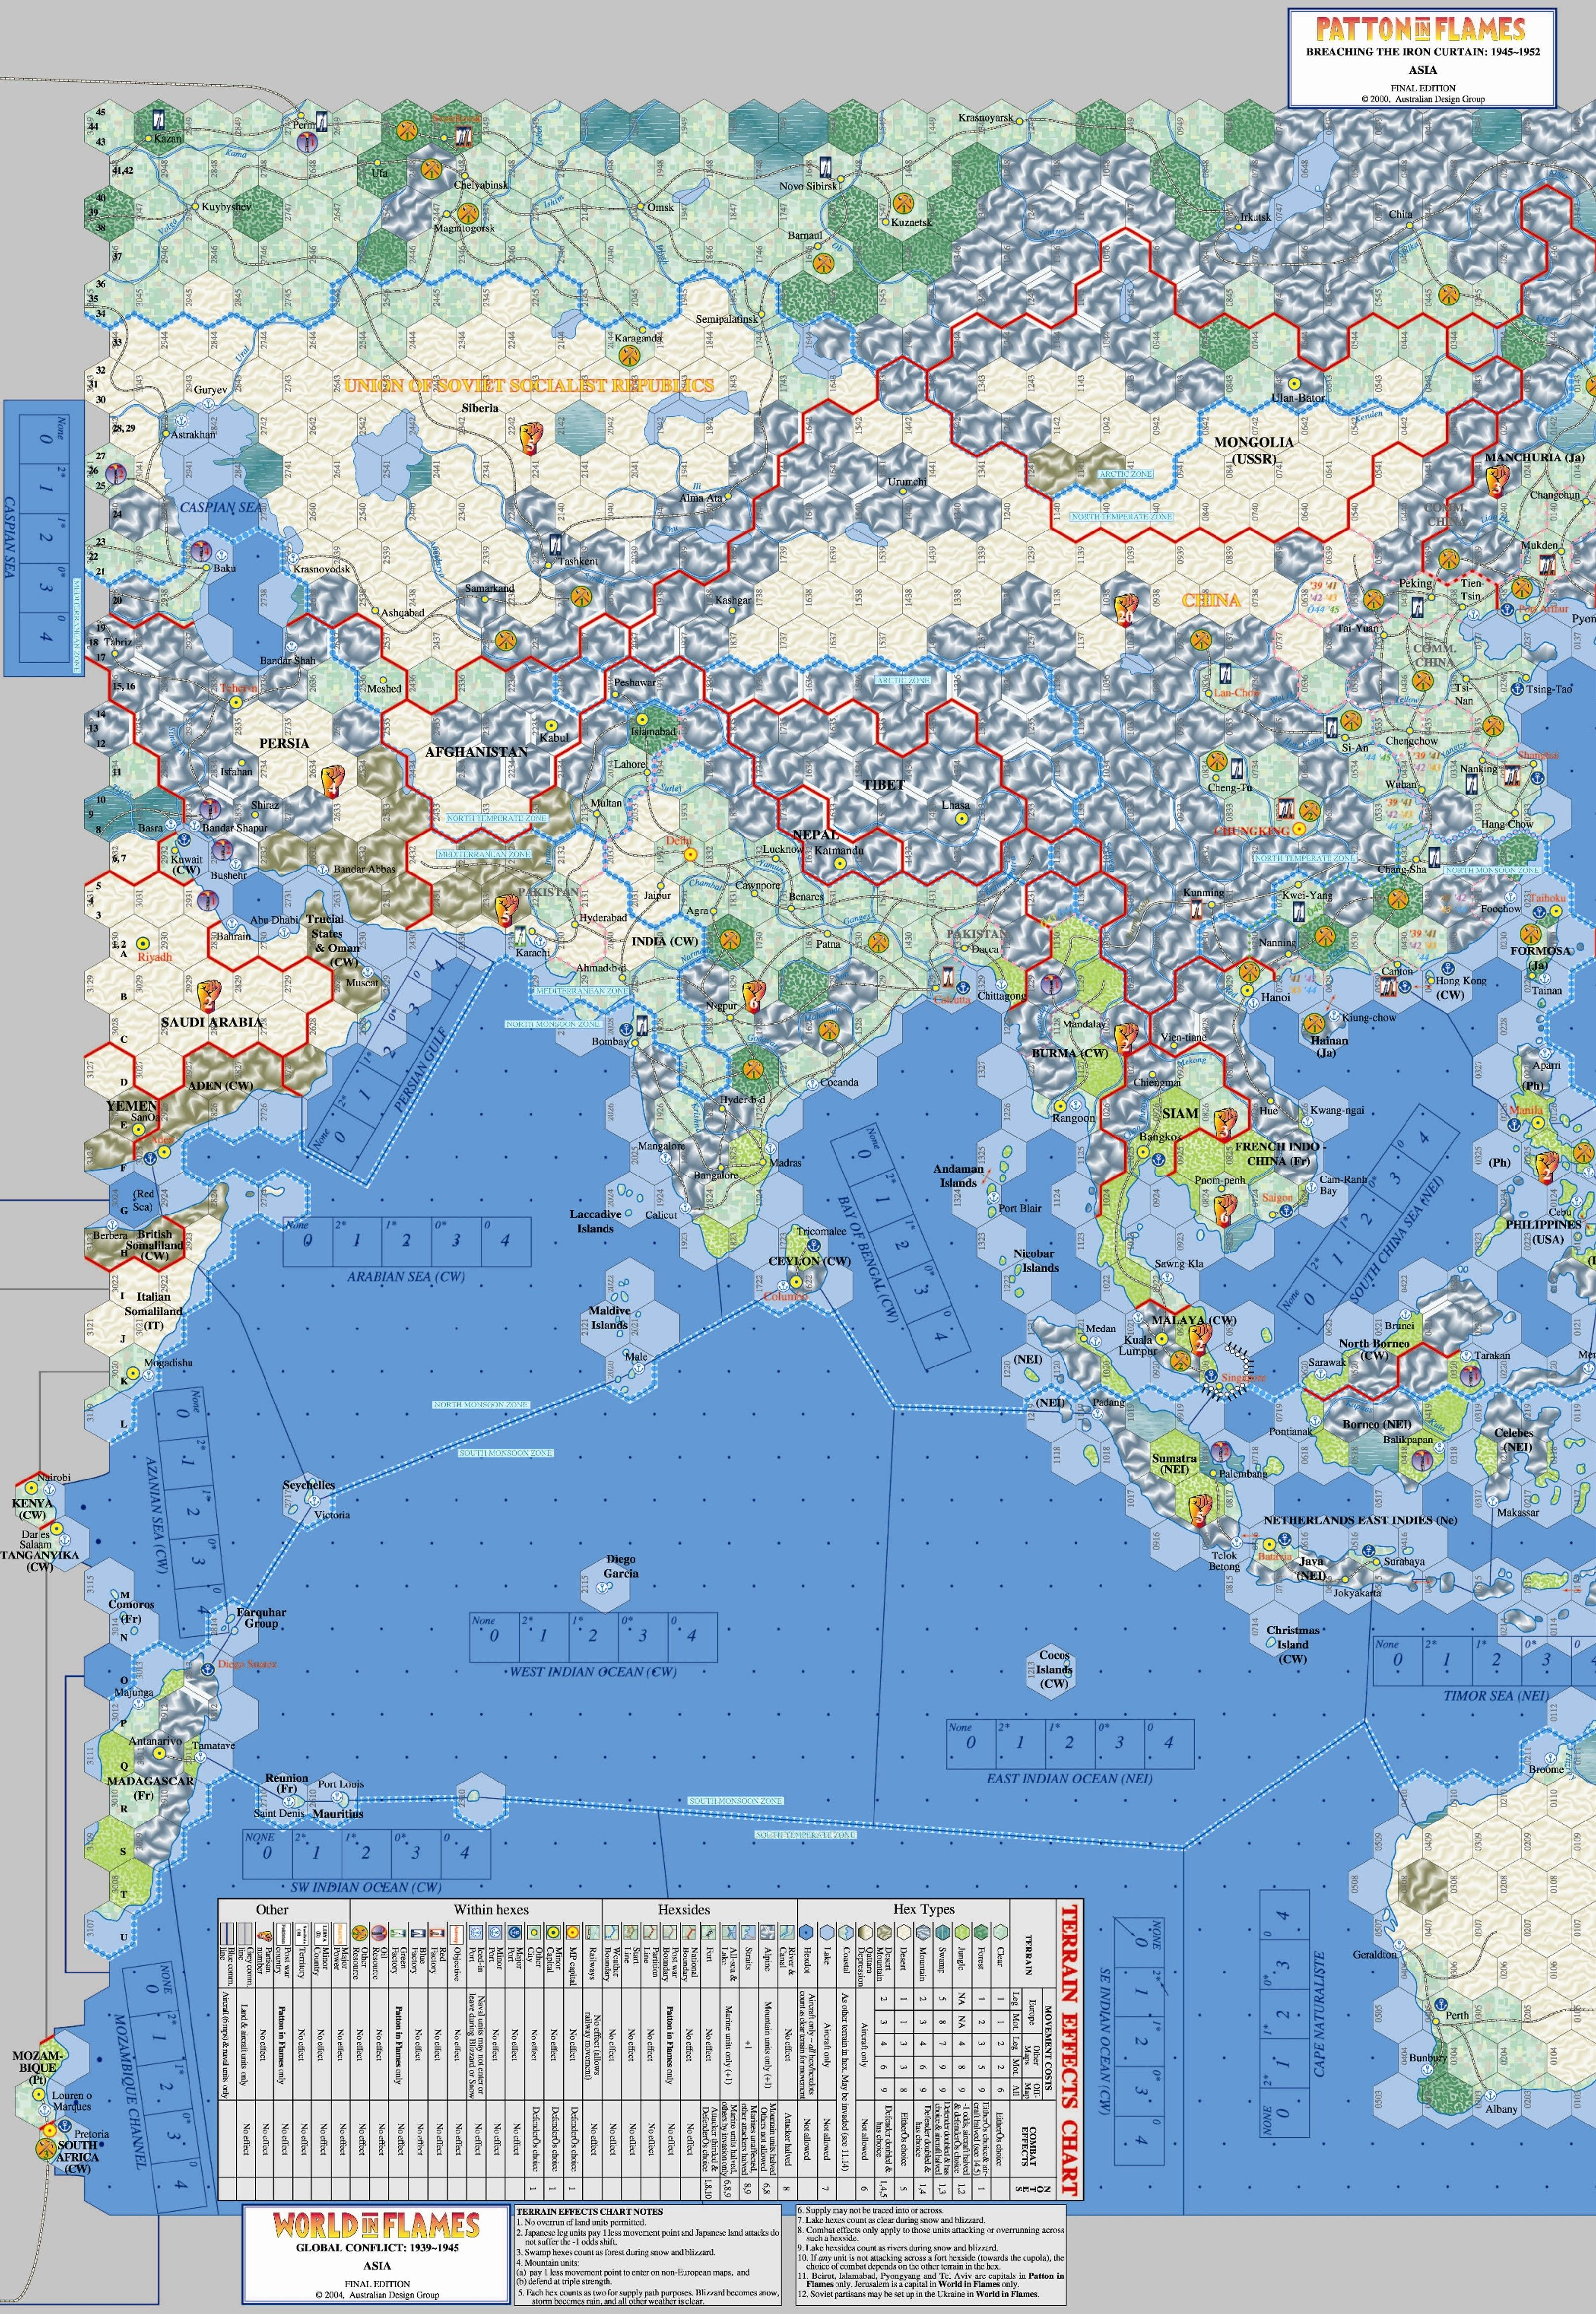 World in flames asia wargames pinterest world in flames asia gumiabroncs Images